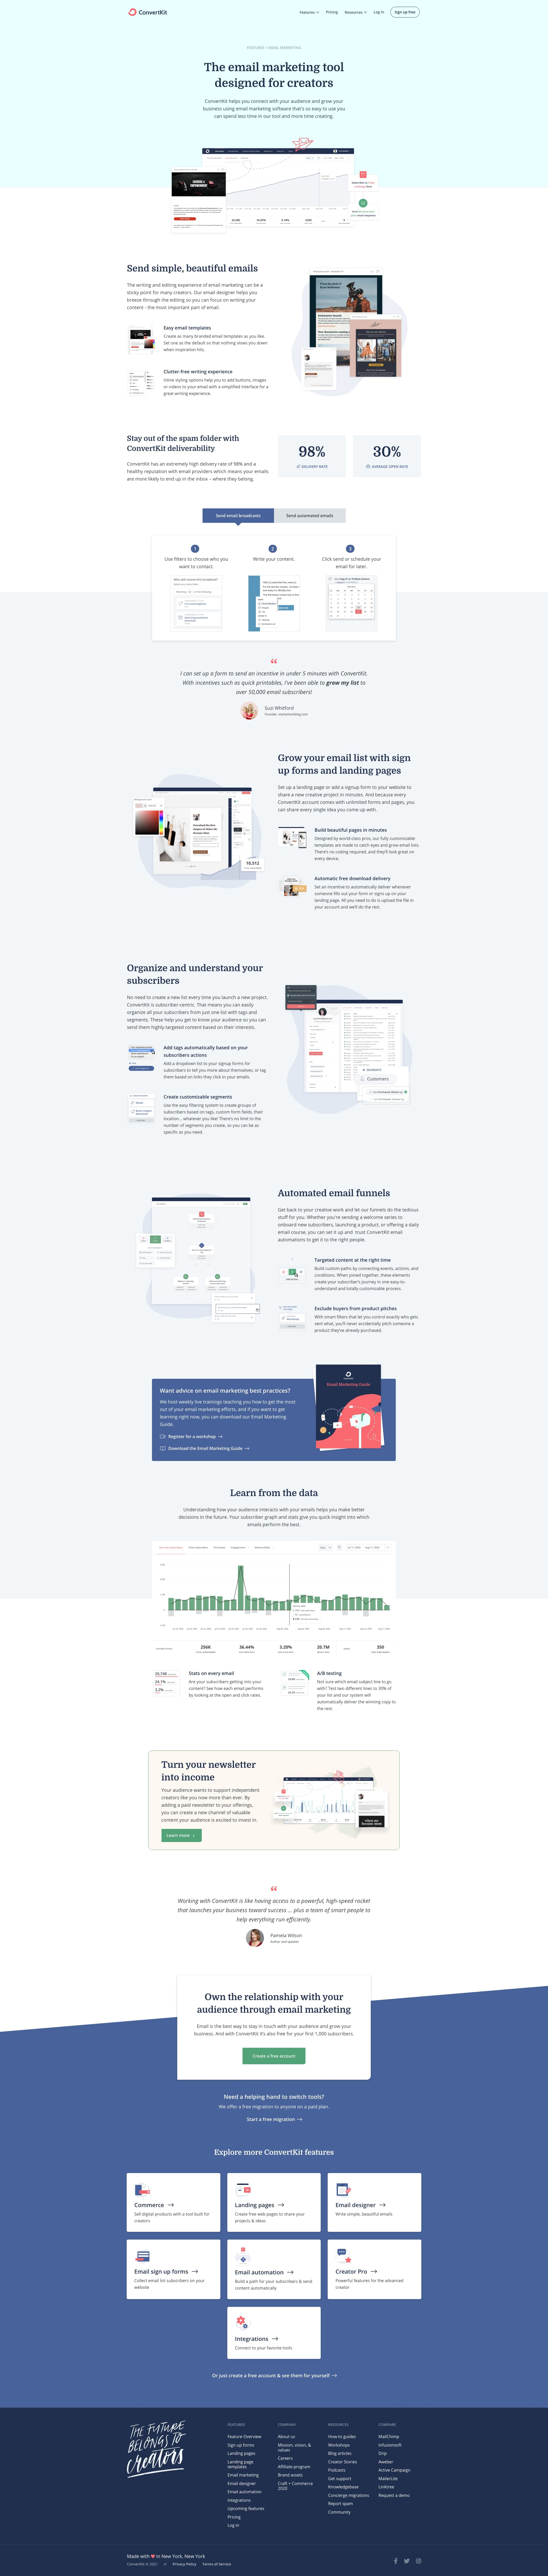 ConvertKit email marketing feature page